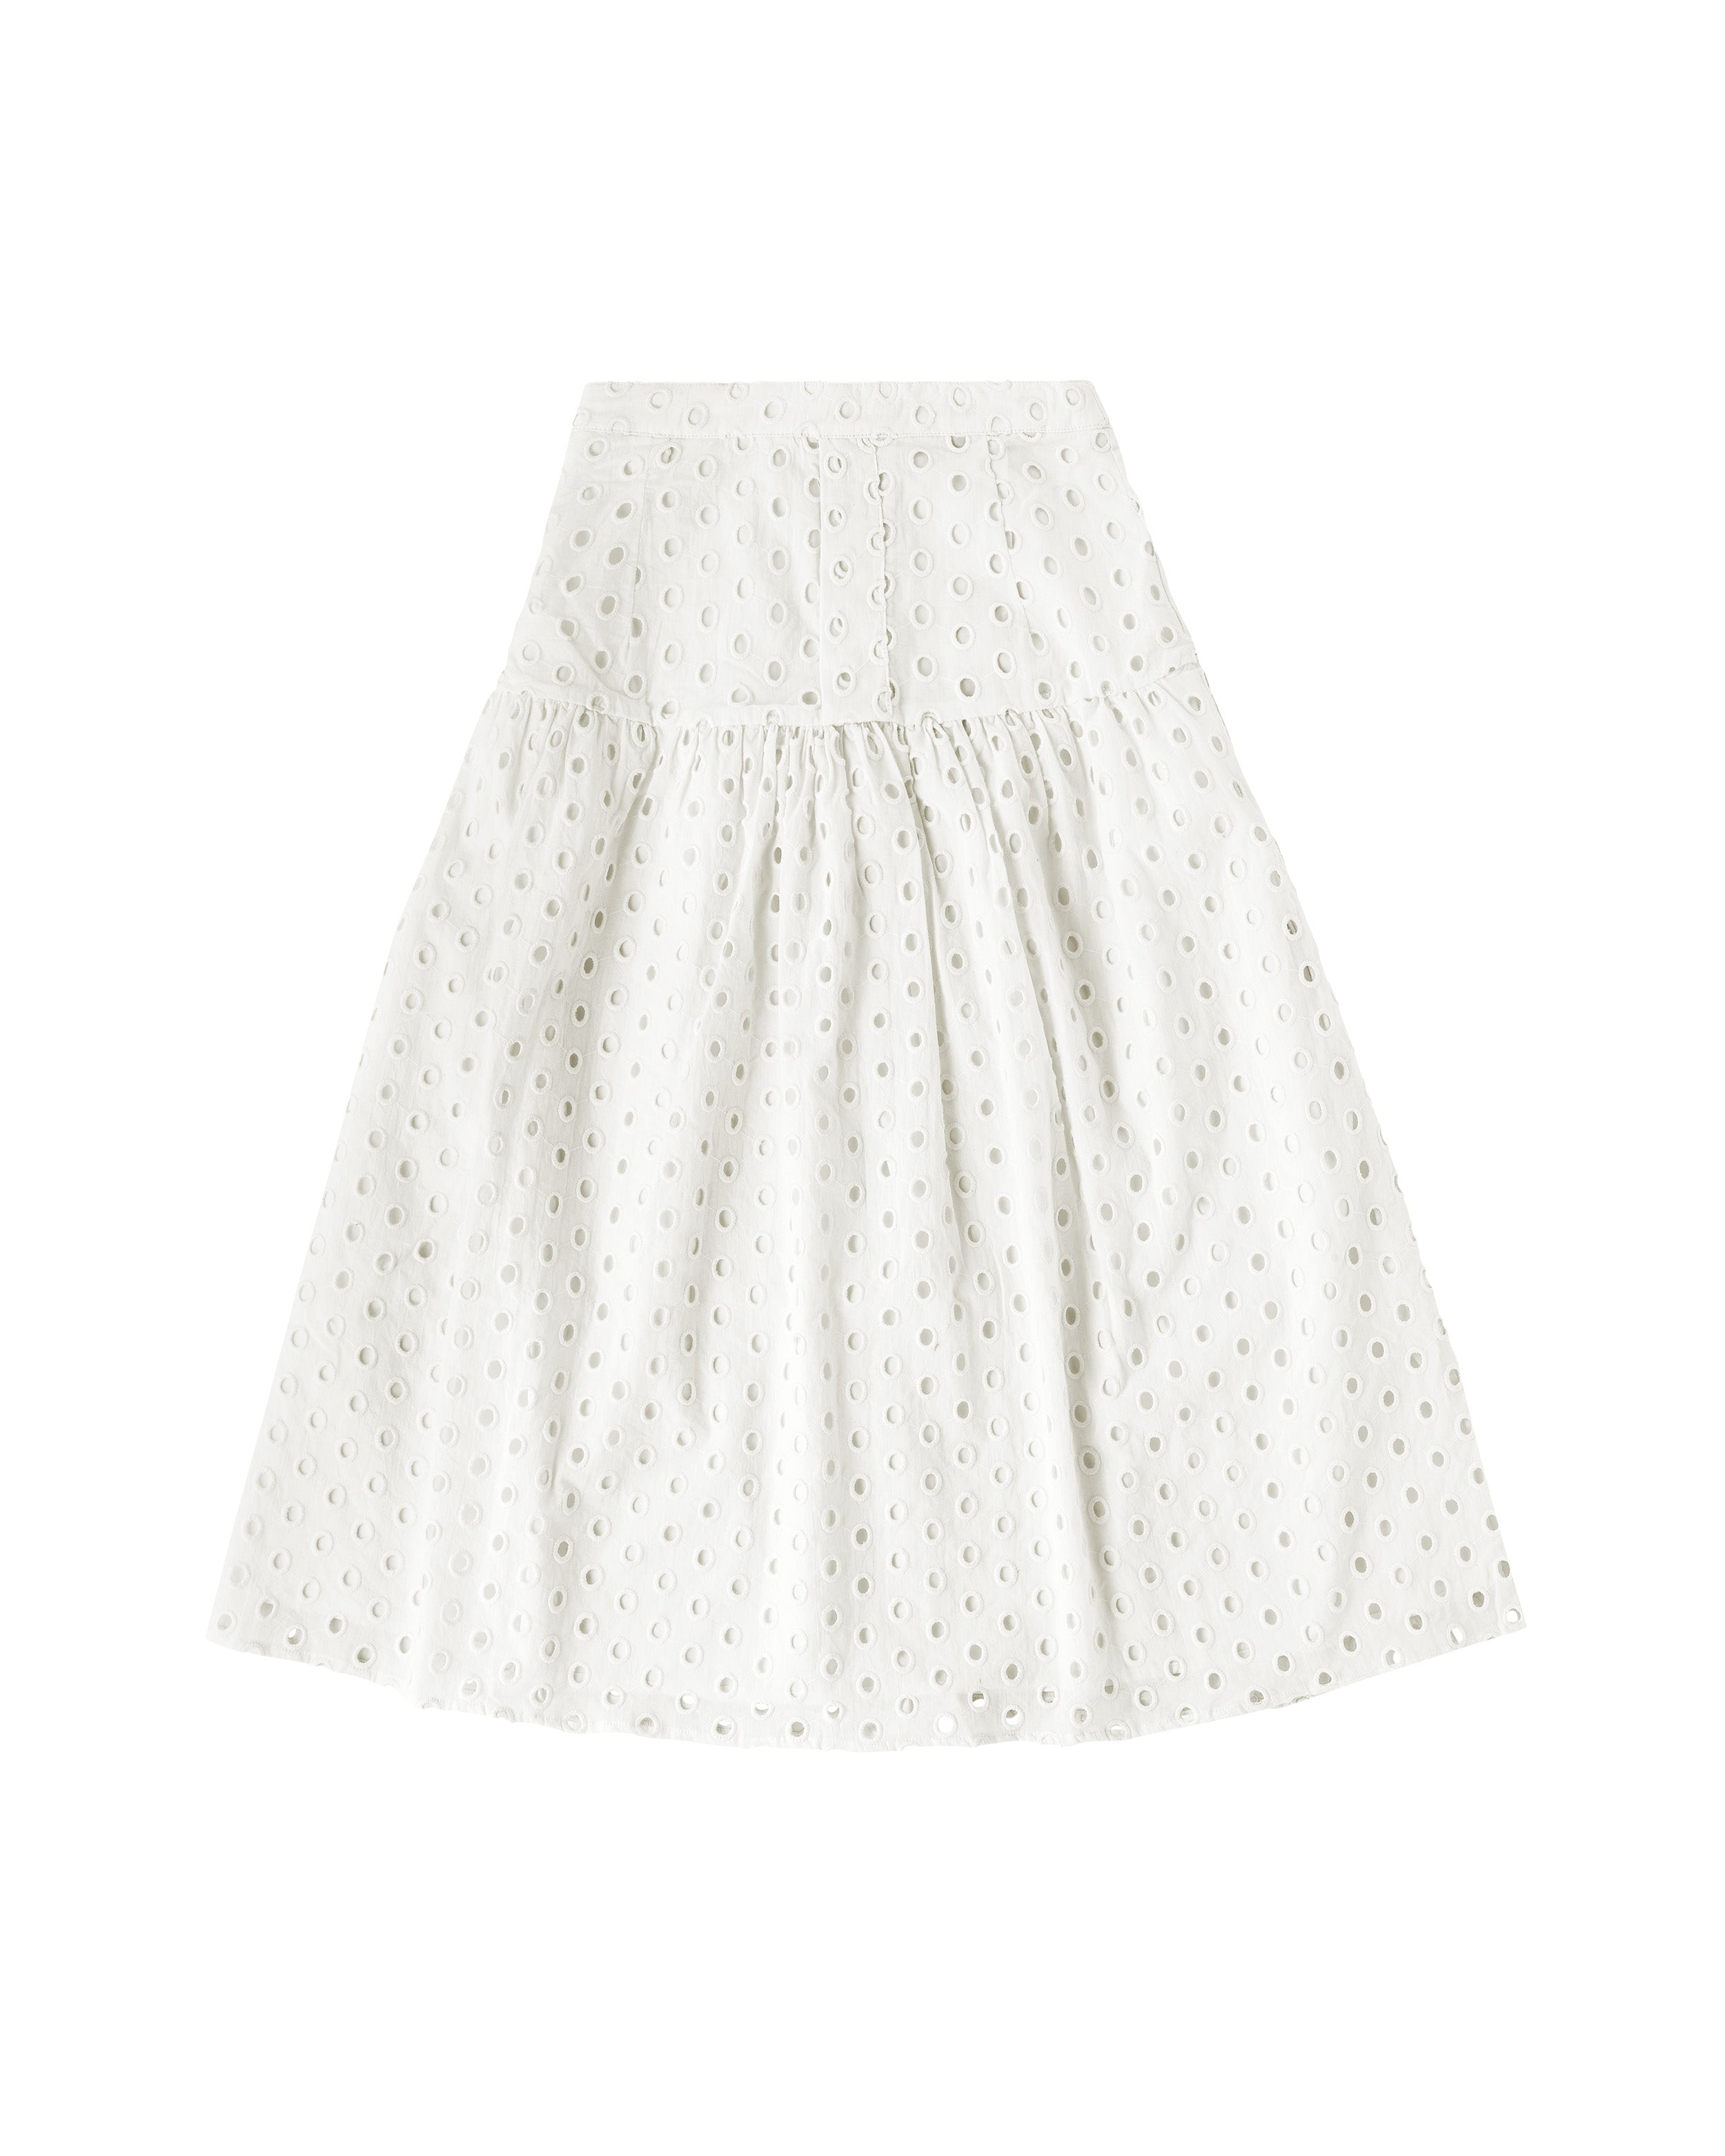 Fiesta Skirt Cream